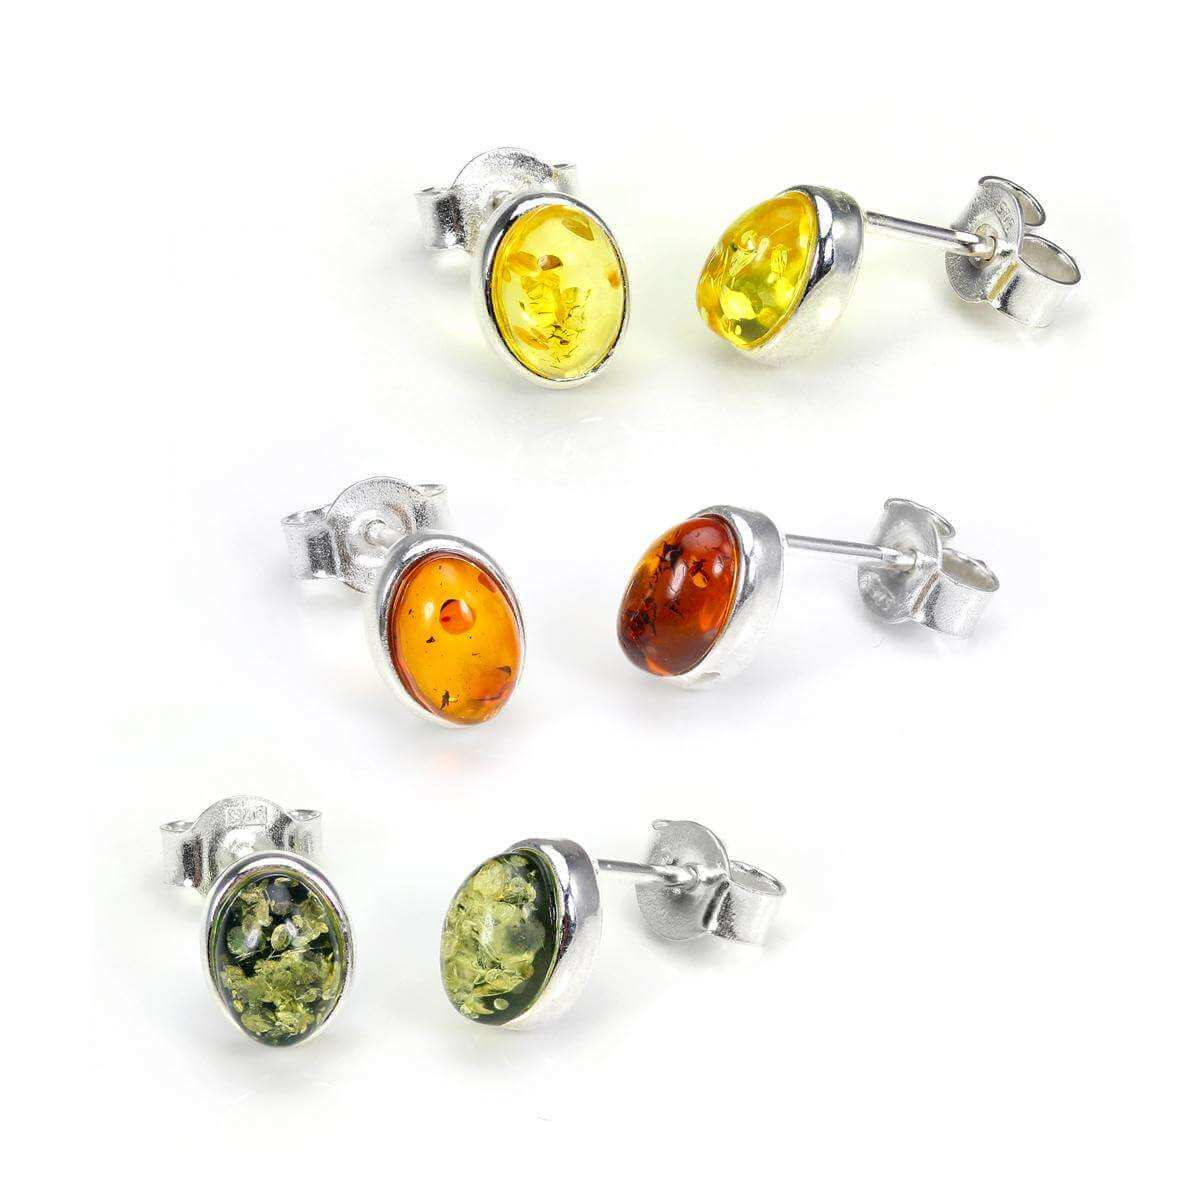 Small Sterling Silver & Baltic Amber Oval Stud Earrings